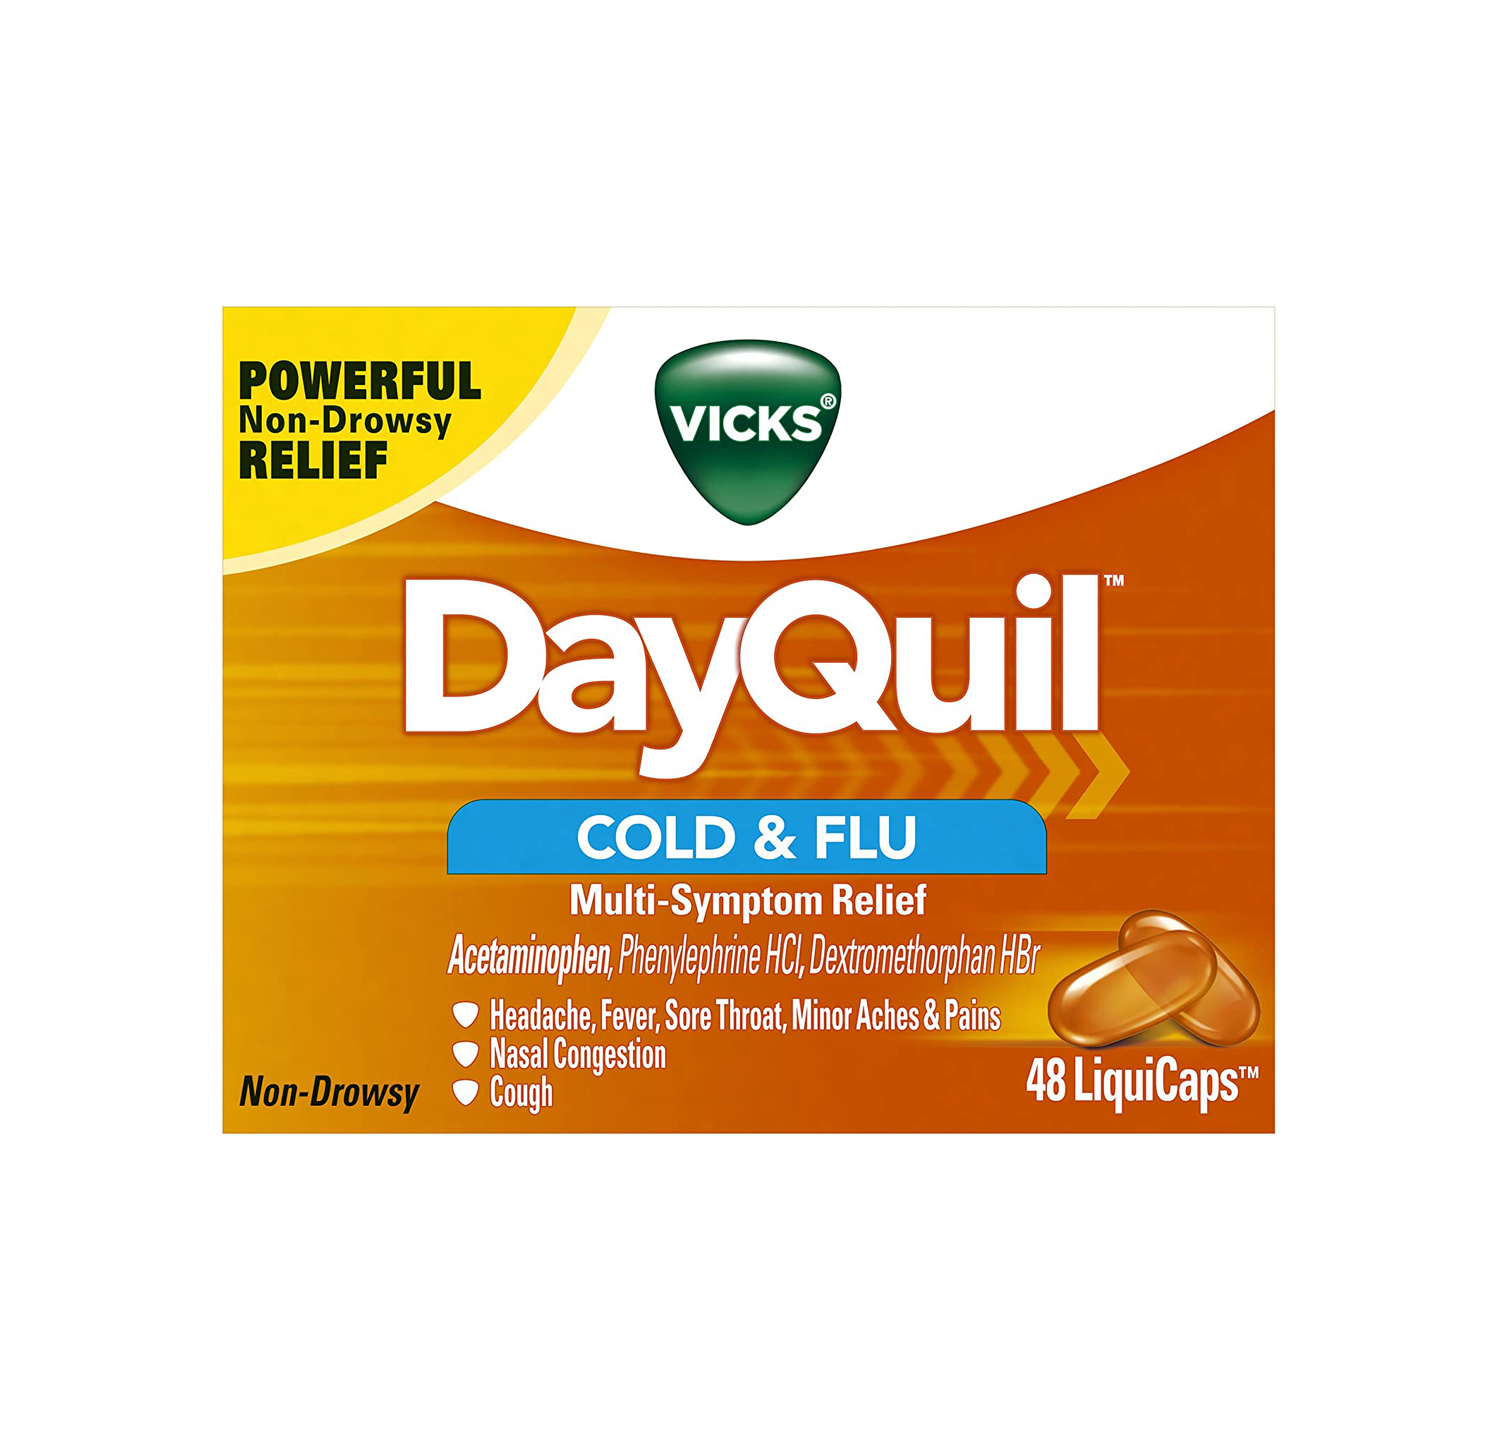 Image For DayQuil Cold and Flu